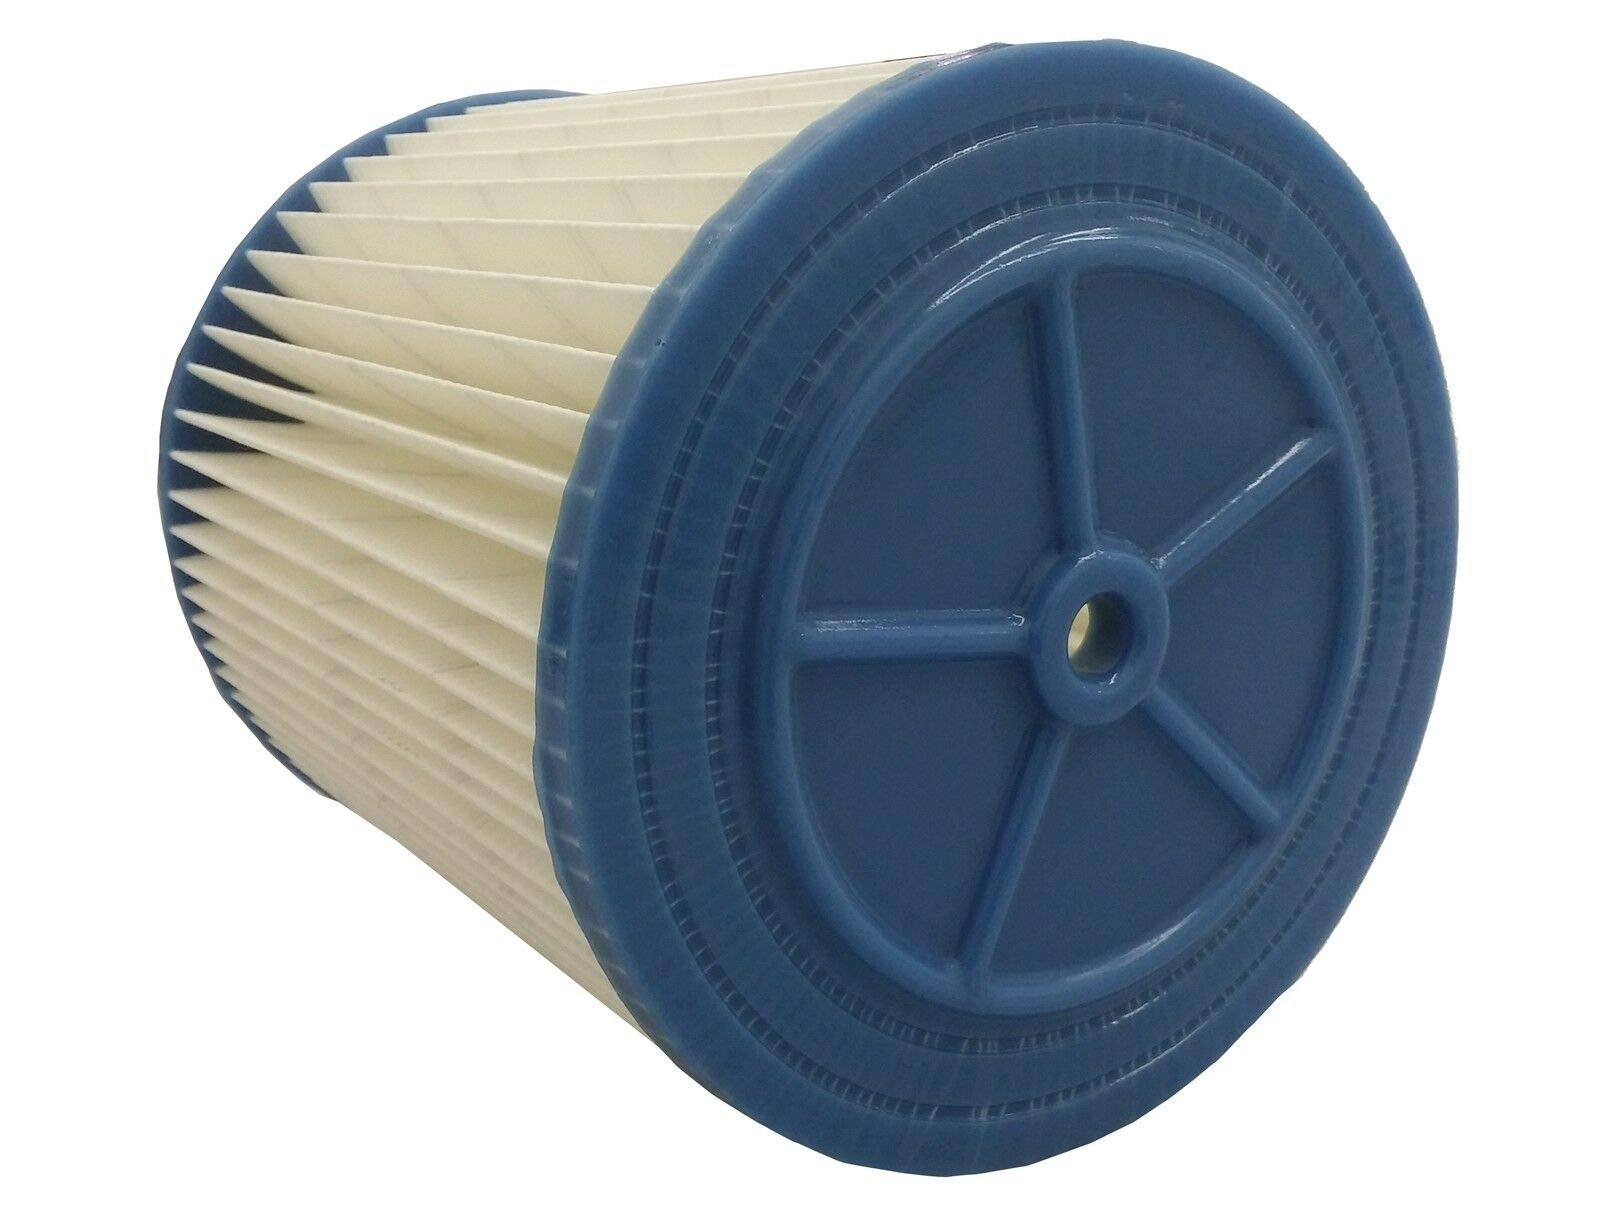 Vacuum Filter for Shop Vac/Craftsman 17816, 9-17816 Replacement Wet Dry 3-Pack